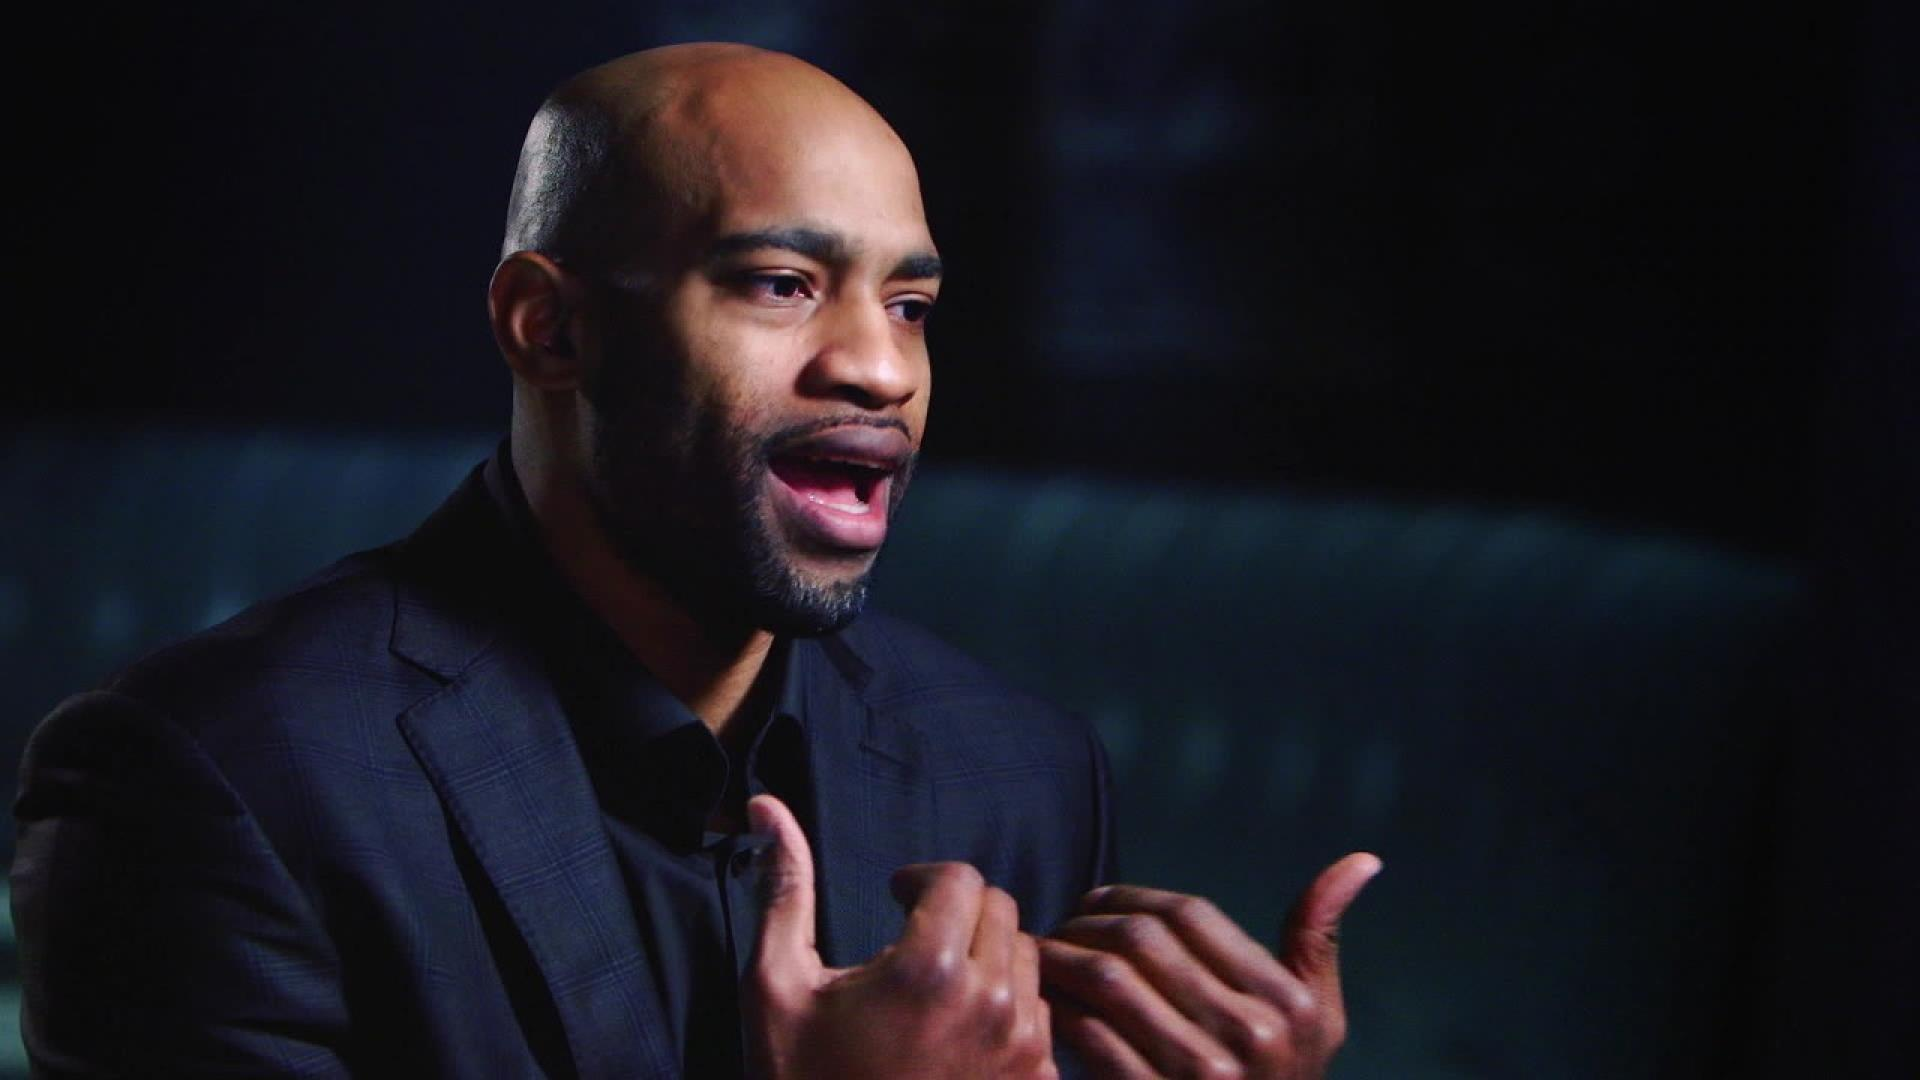 Vince Carter hoping to have jersey retired by Toronto Raptors